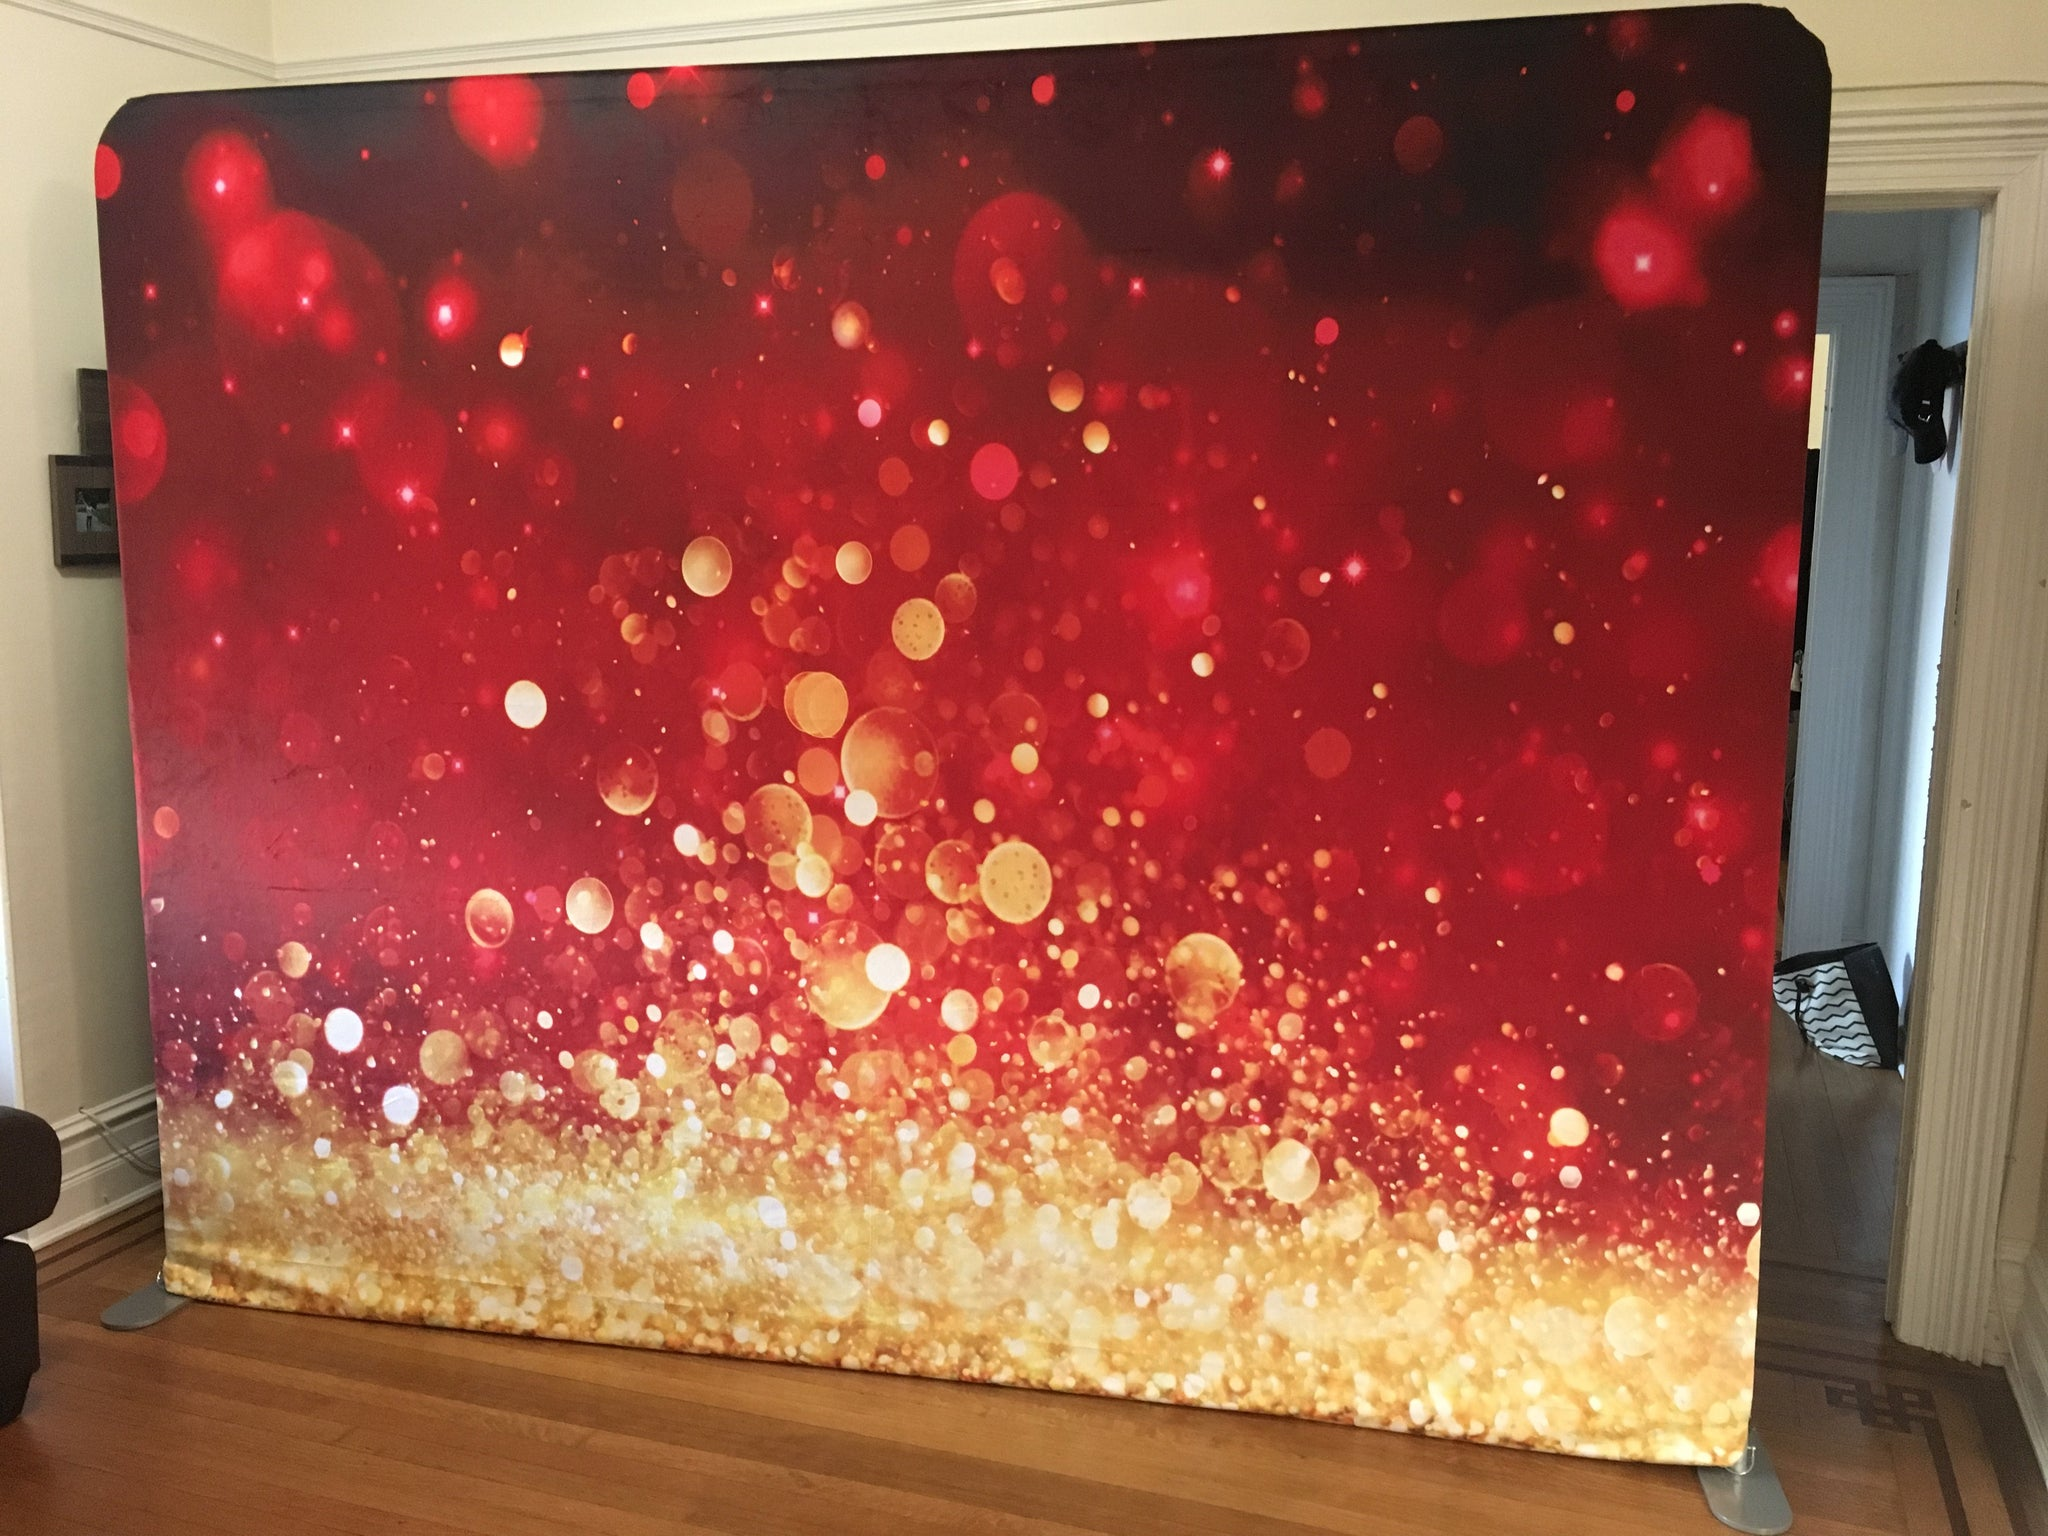 Load image into Gallery viewer, Katebackdrop£ºKate Bokeh Christmas Festival Party Photography Backdrop Red Glittering Holiday